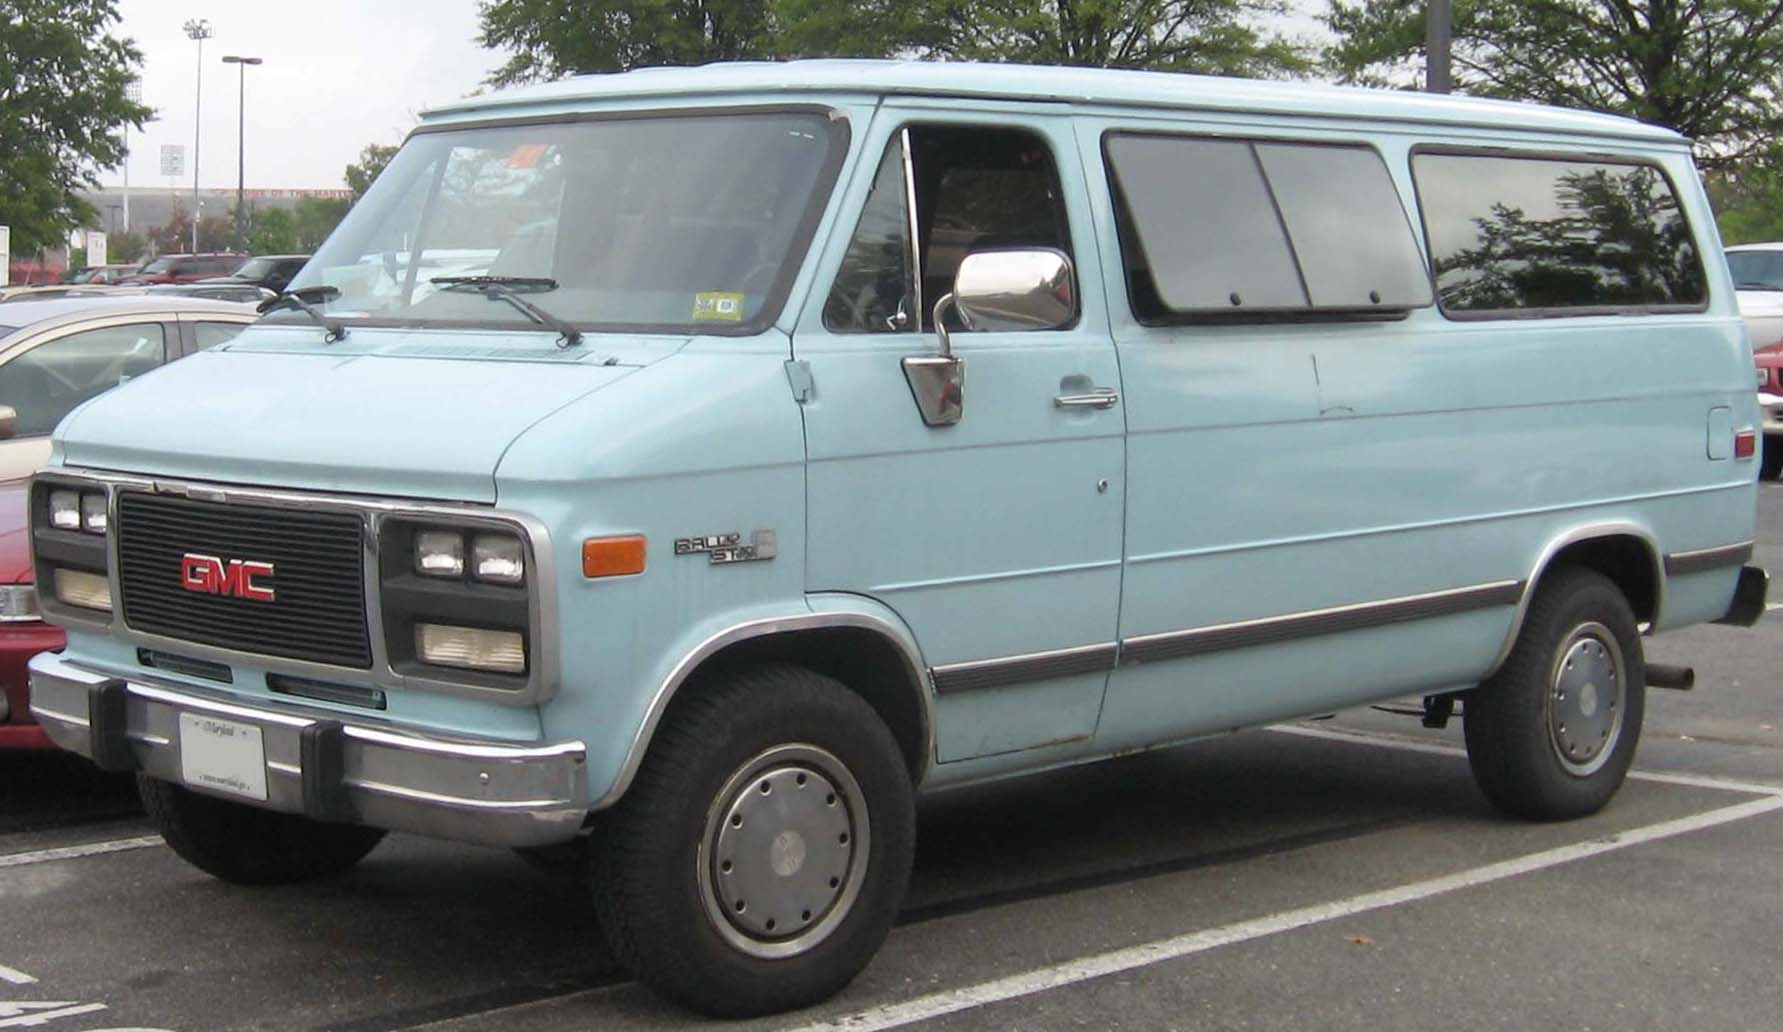 1996 gmc vandura - information and photos